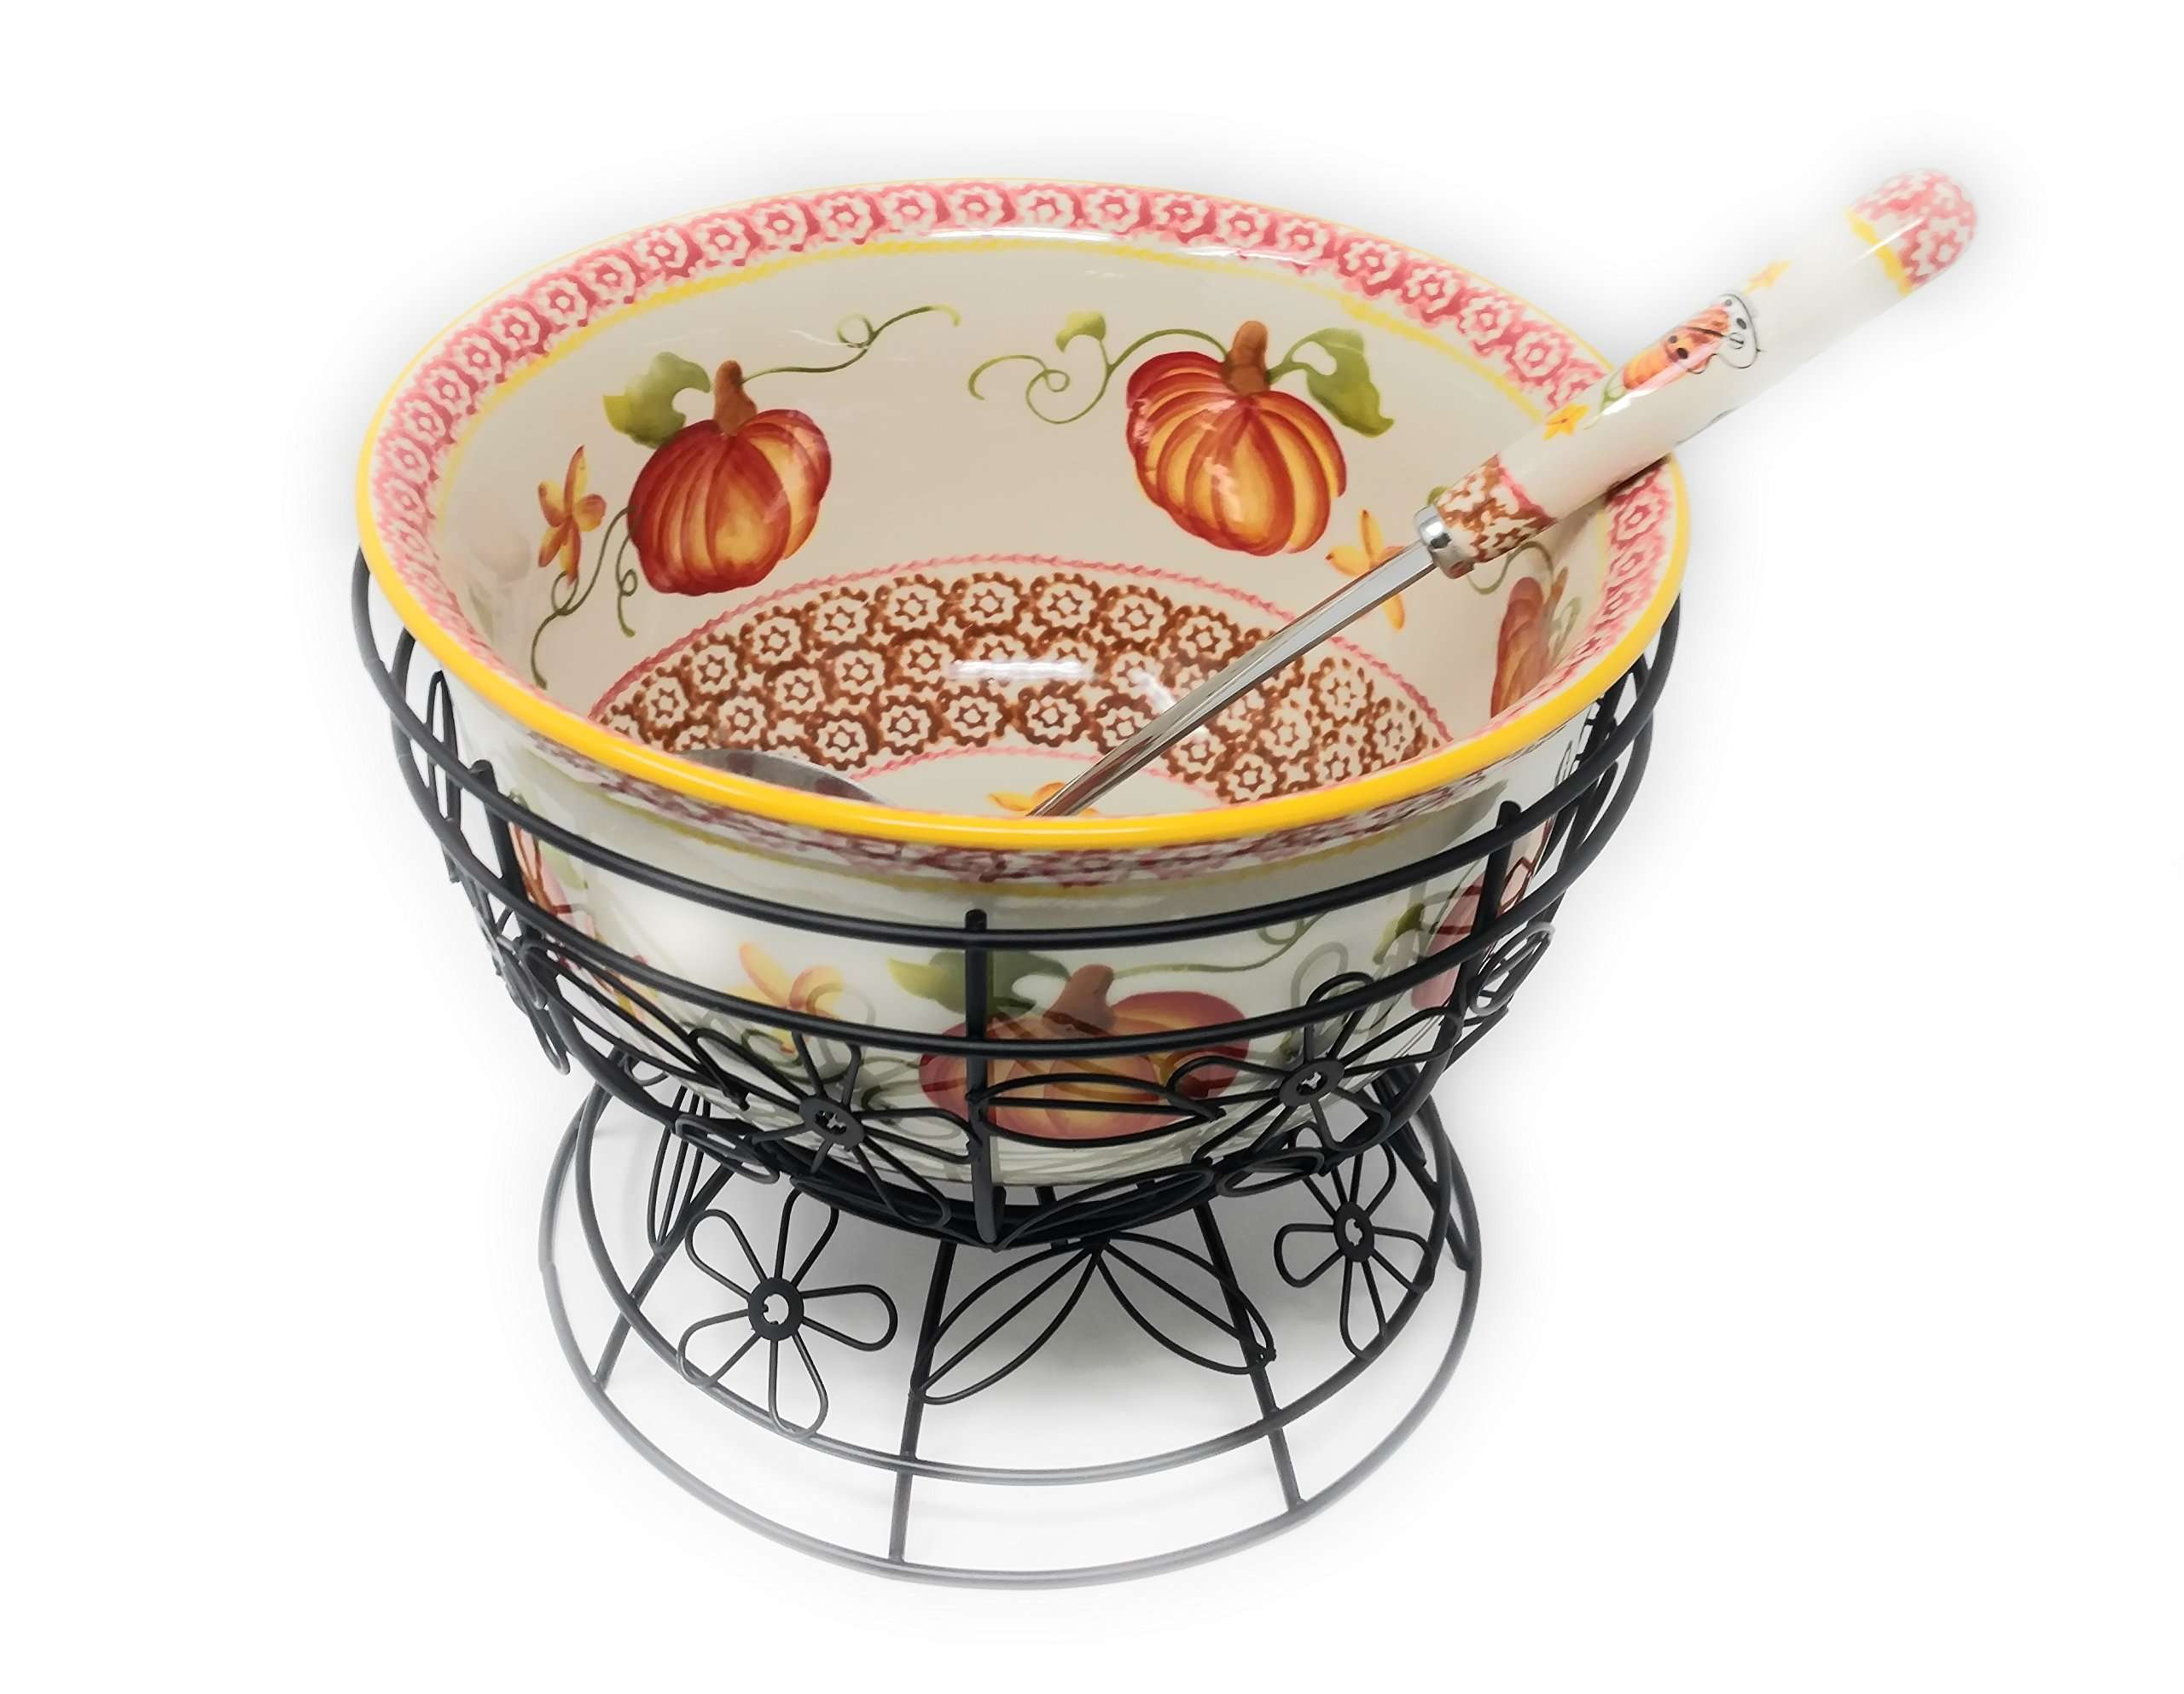 Temp-tations 4.5 qt Bowl w/ Wire Stand & Ladle - Old World Pumpkin